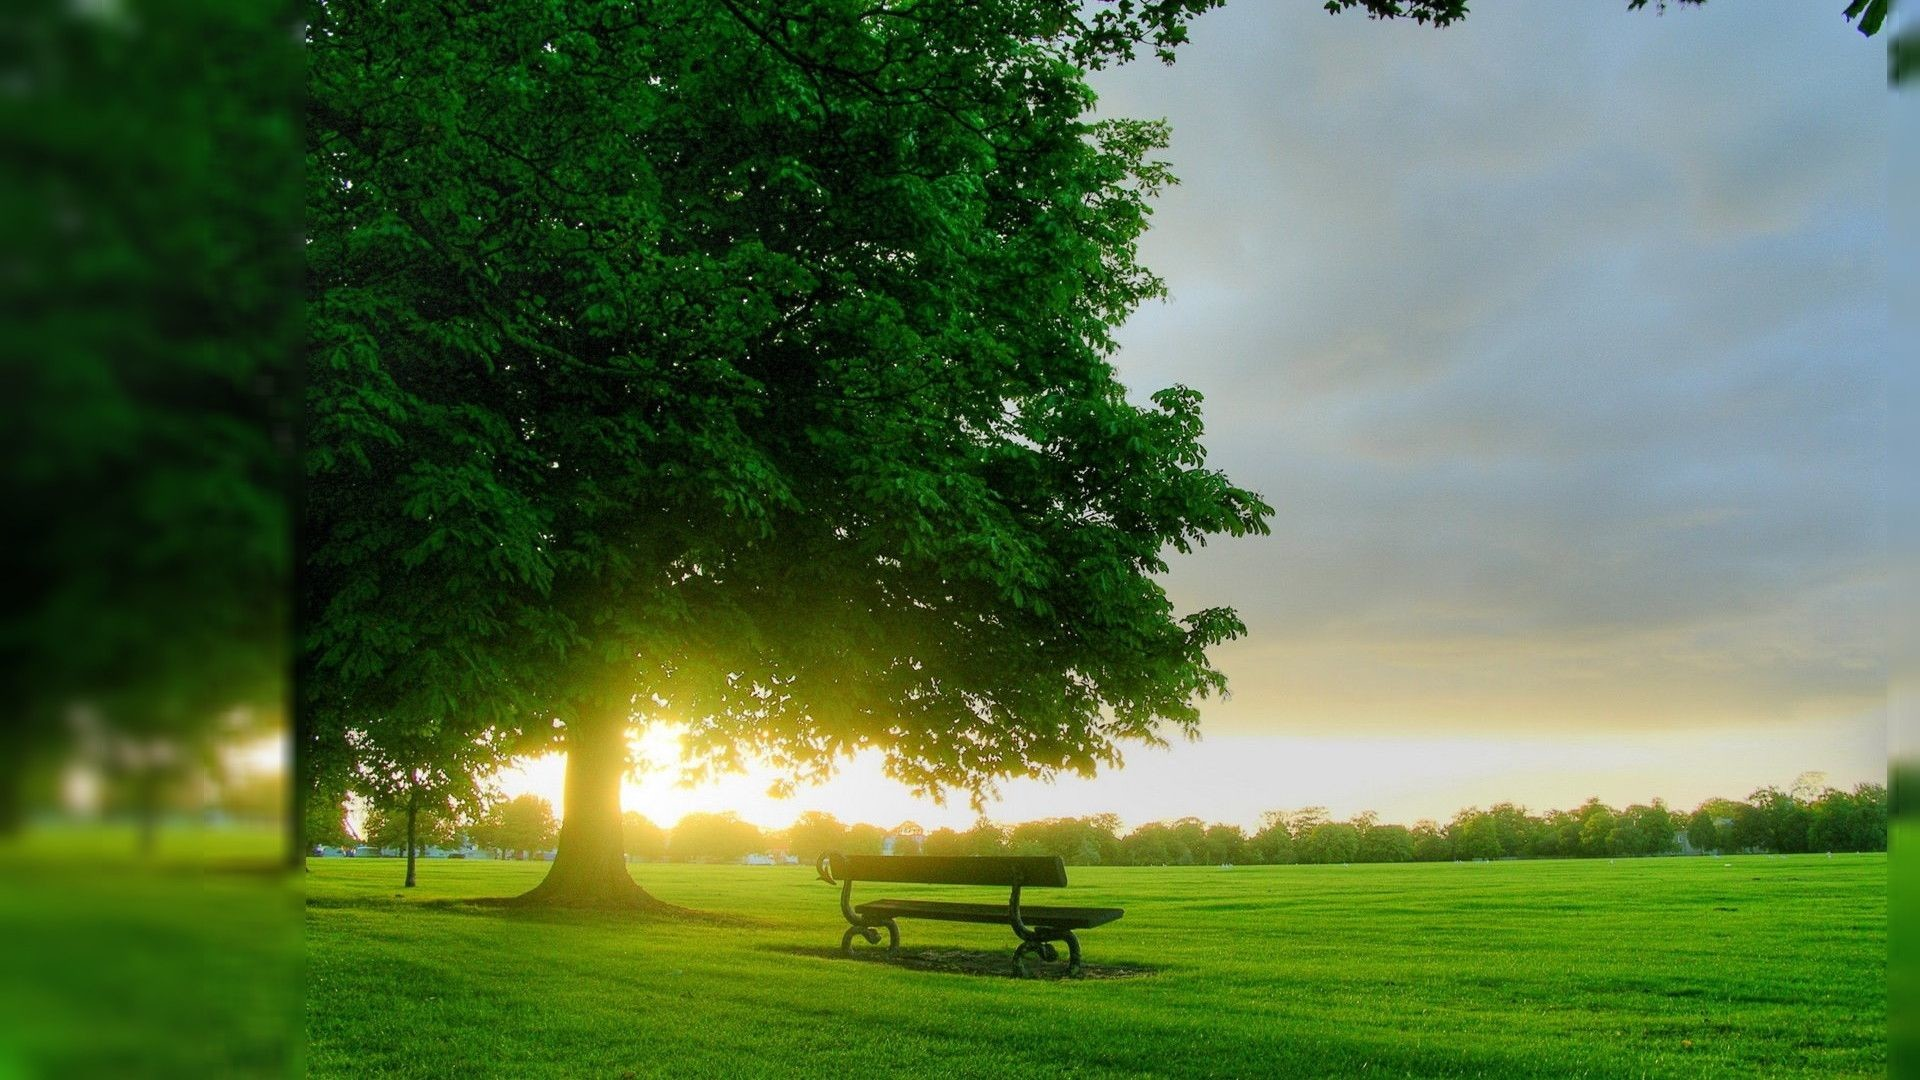 nice wallpapers for mobile,green,natural landscape,nature,sky,bench